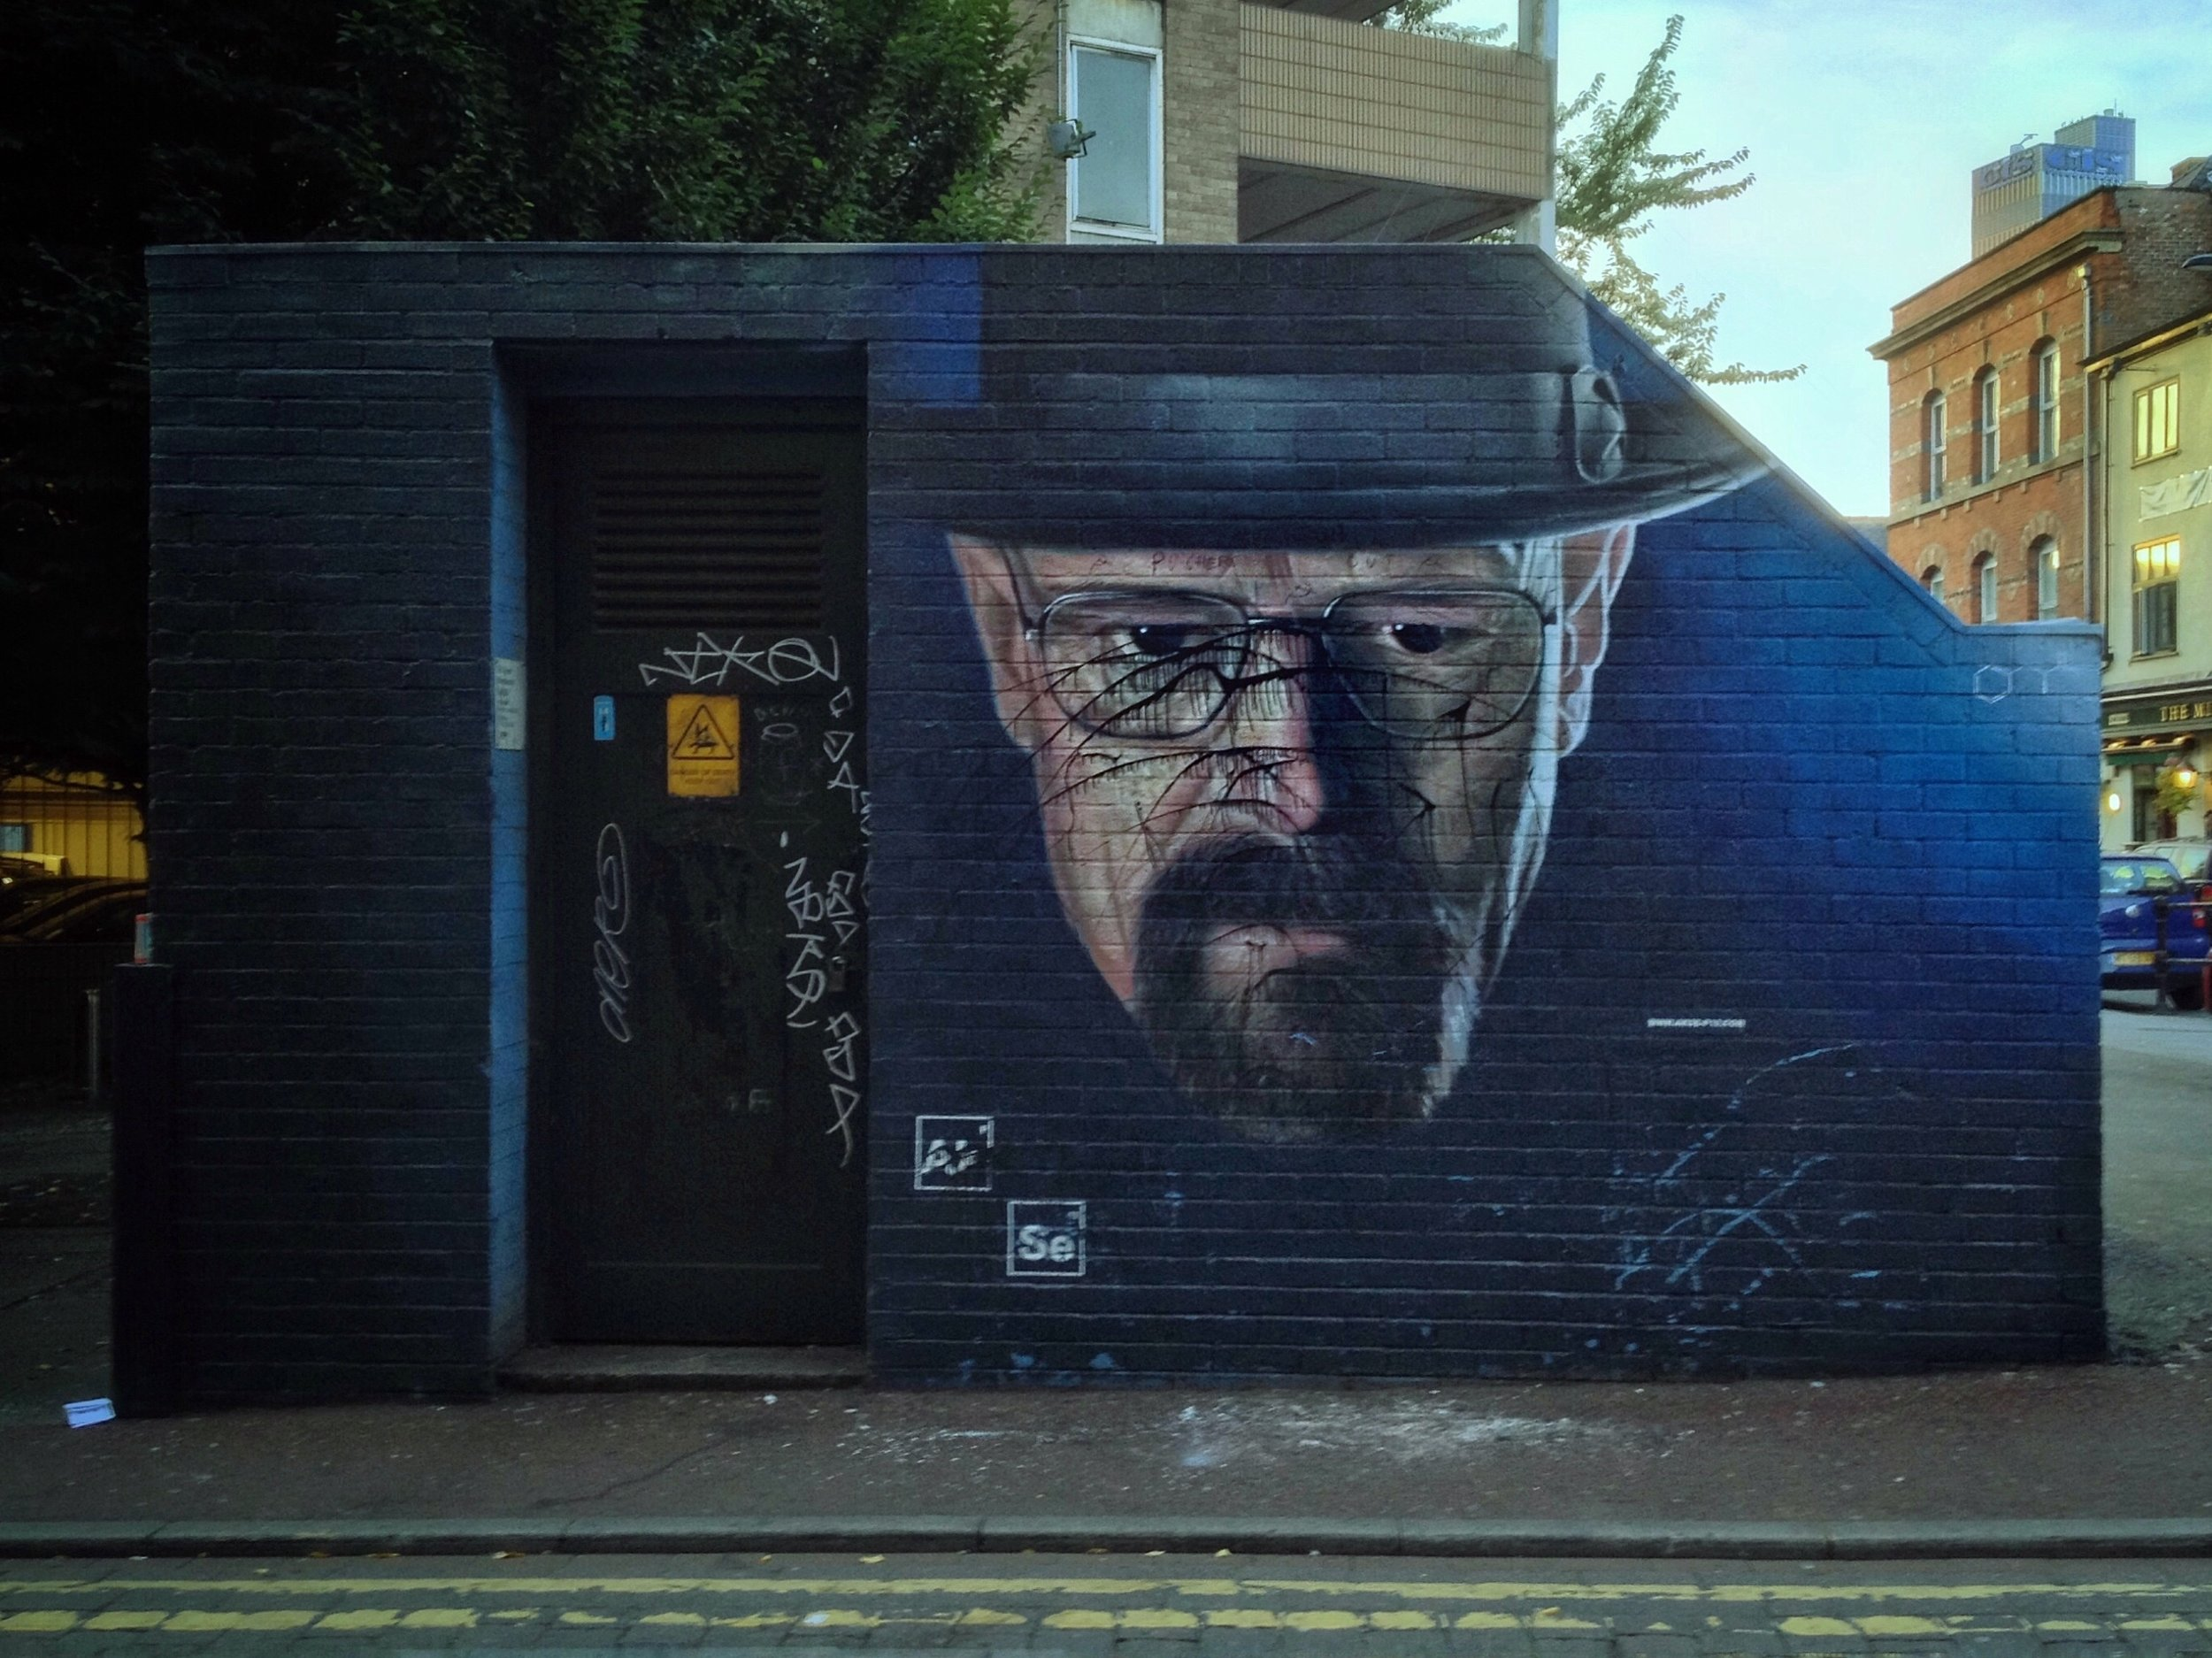 Heisenberg was quickly defaced.